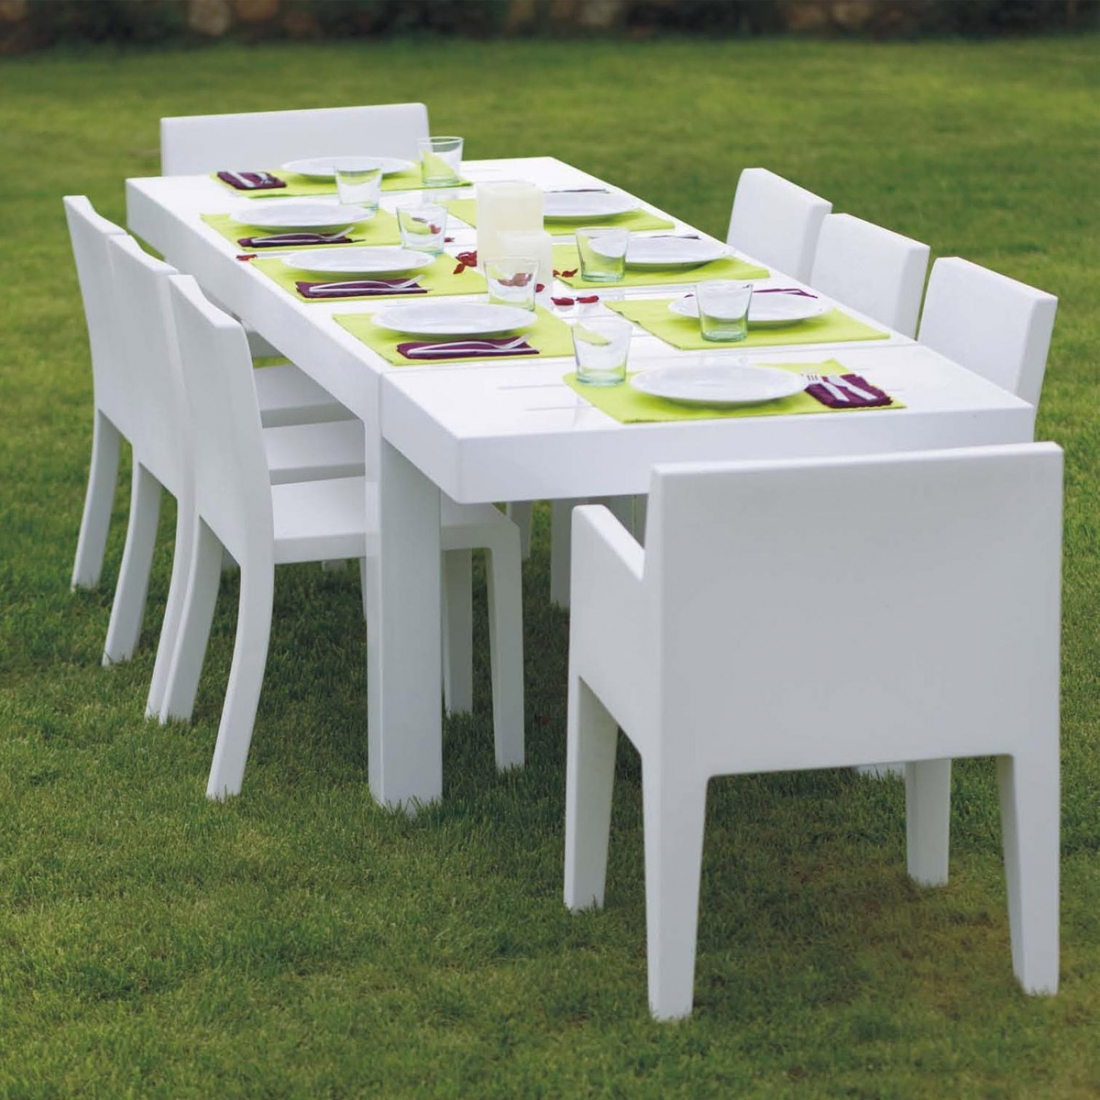 Table de jardin design 10 personnes jut par vondom for Jardin design